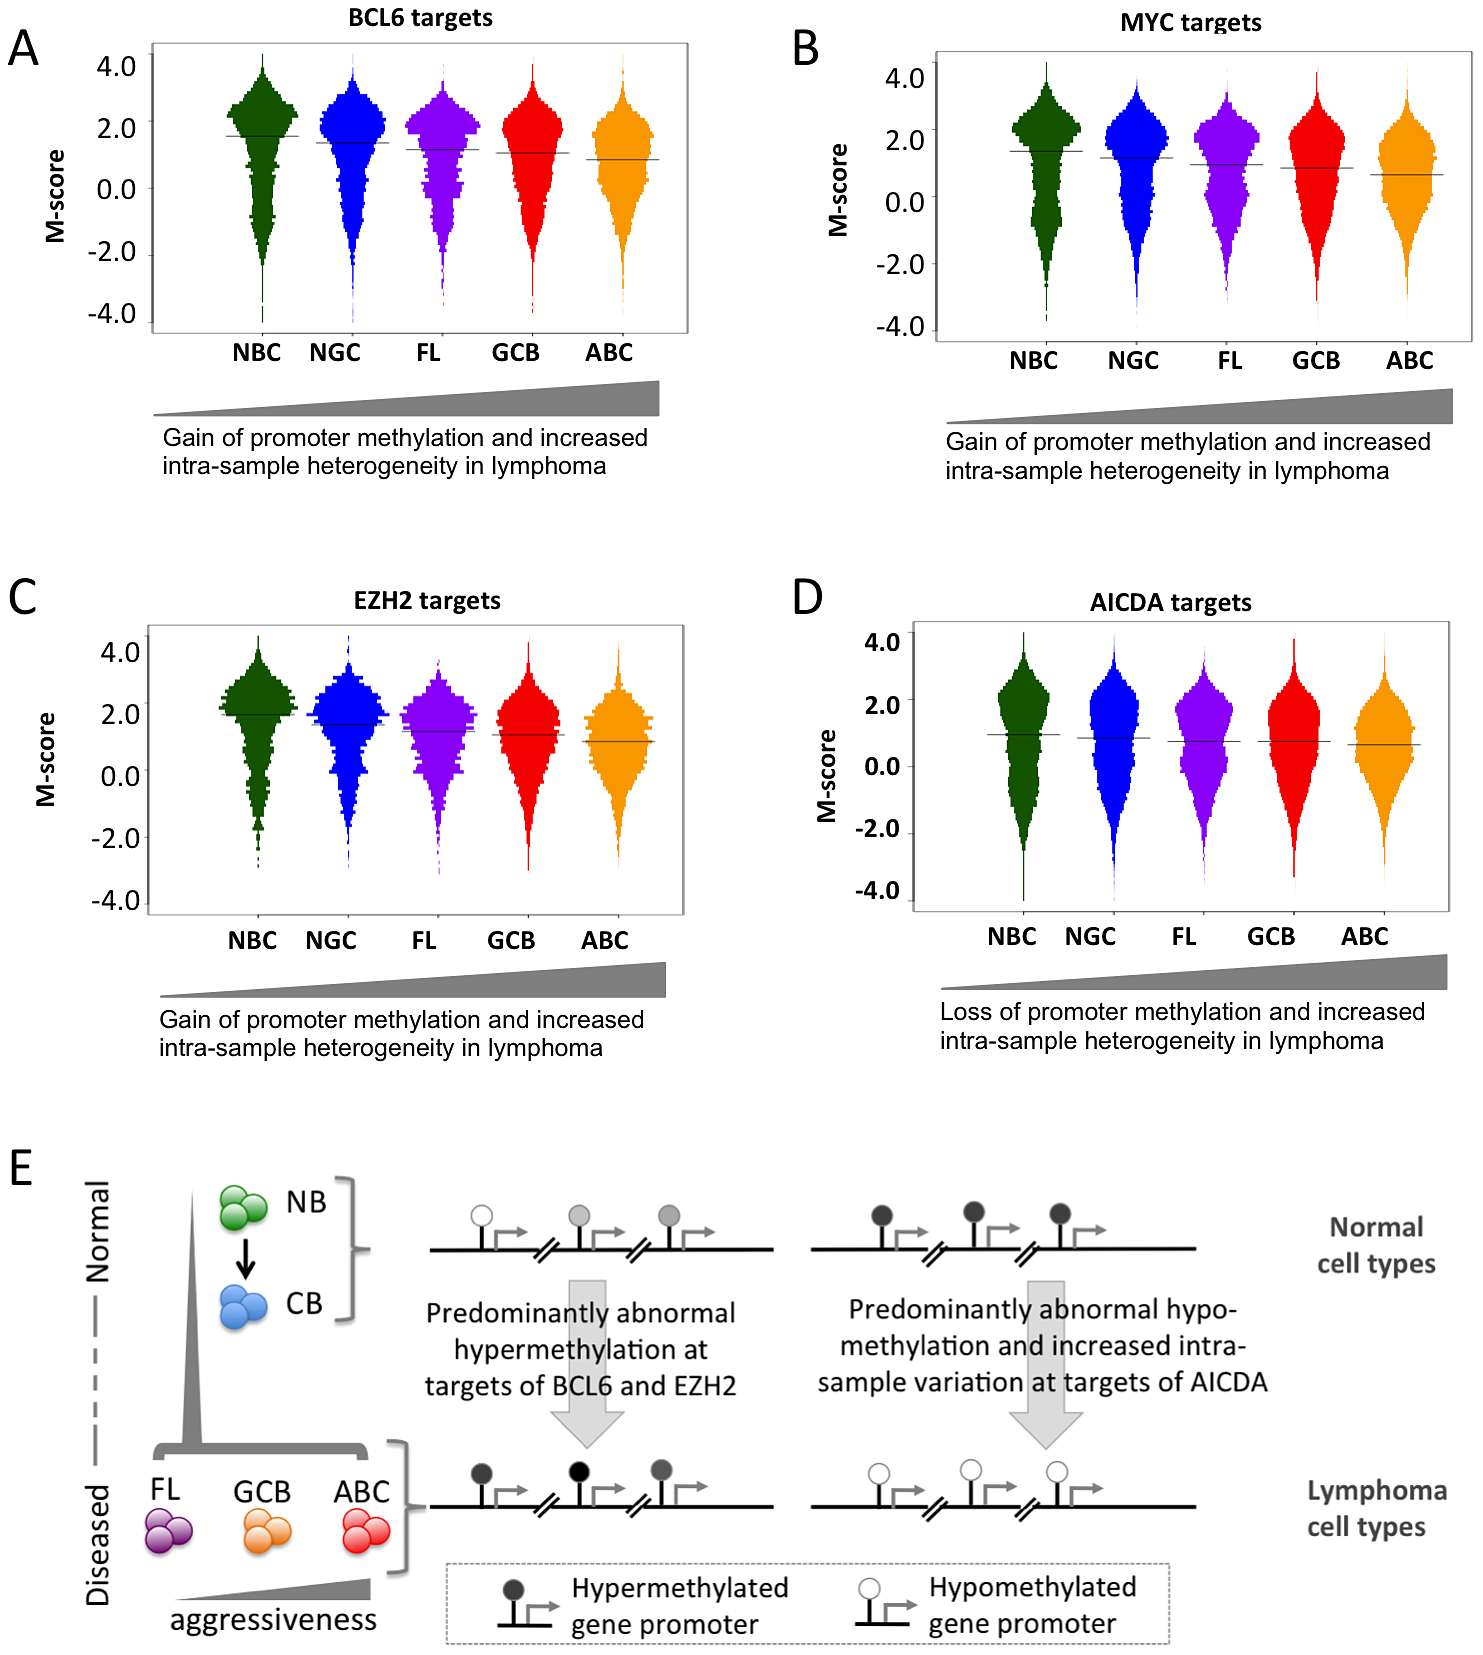 Genomic localization of transcriptional regulators and AICDA associates with sites of aberrant DNA methylation.